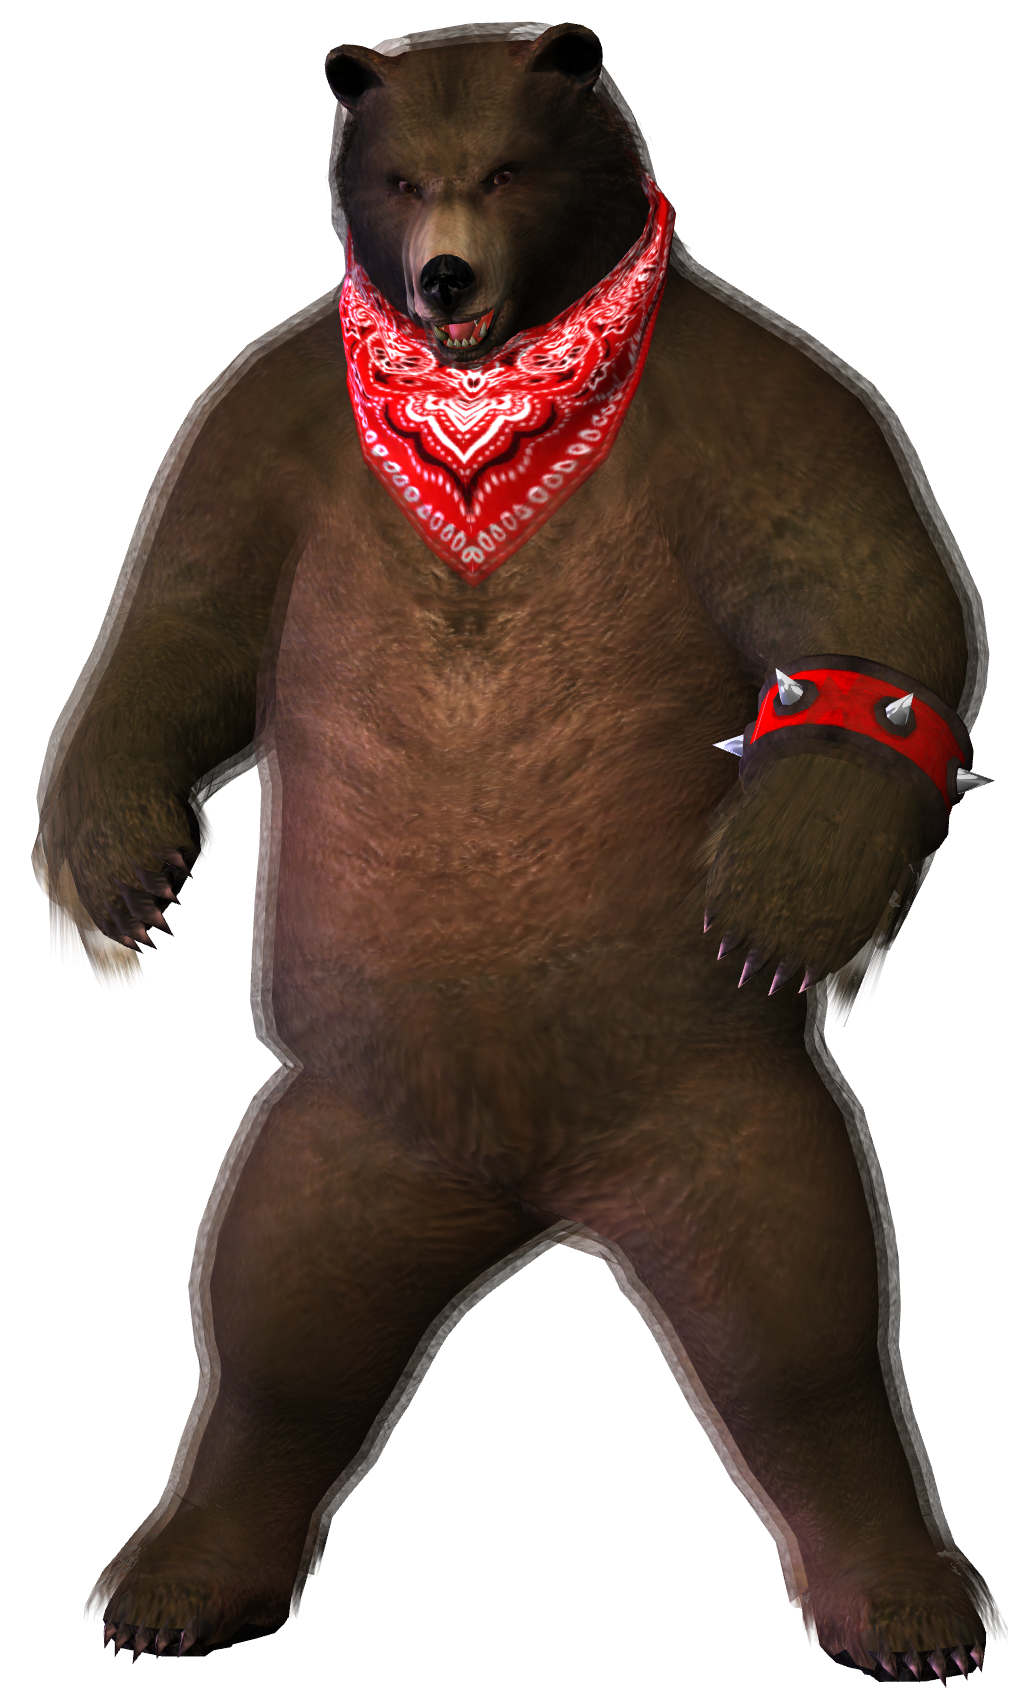 Tekken 6 Kuma Xps Download By Pedro Croft On Deviantart